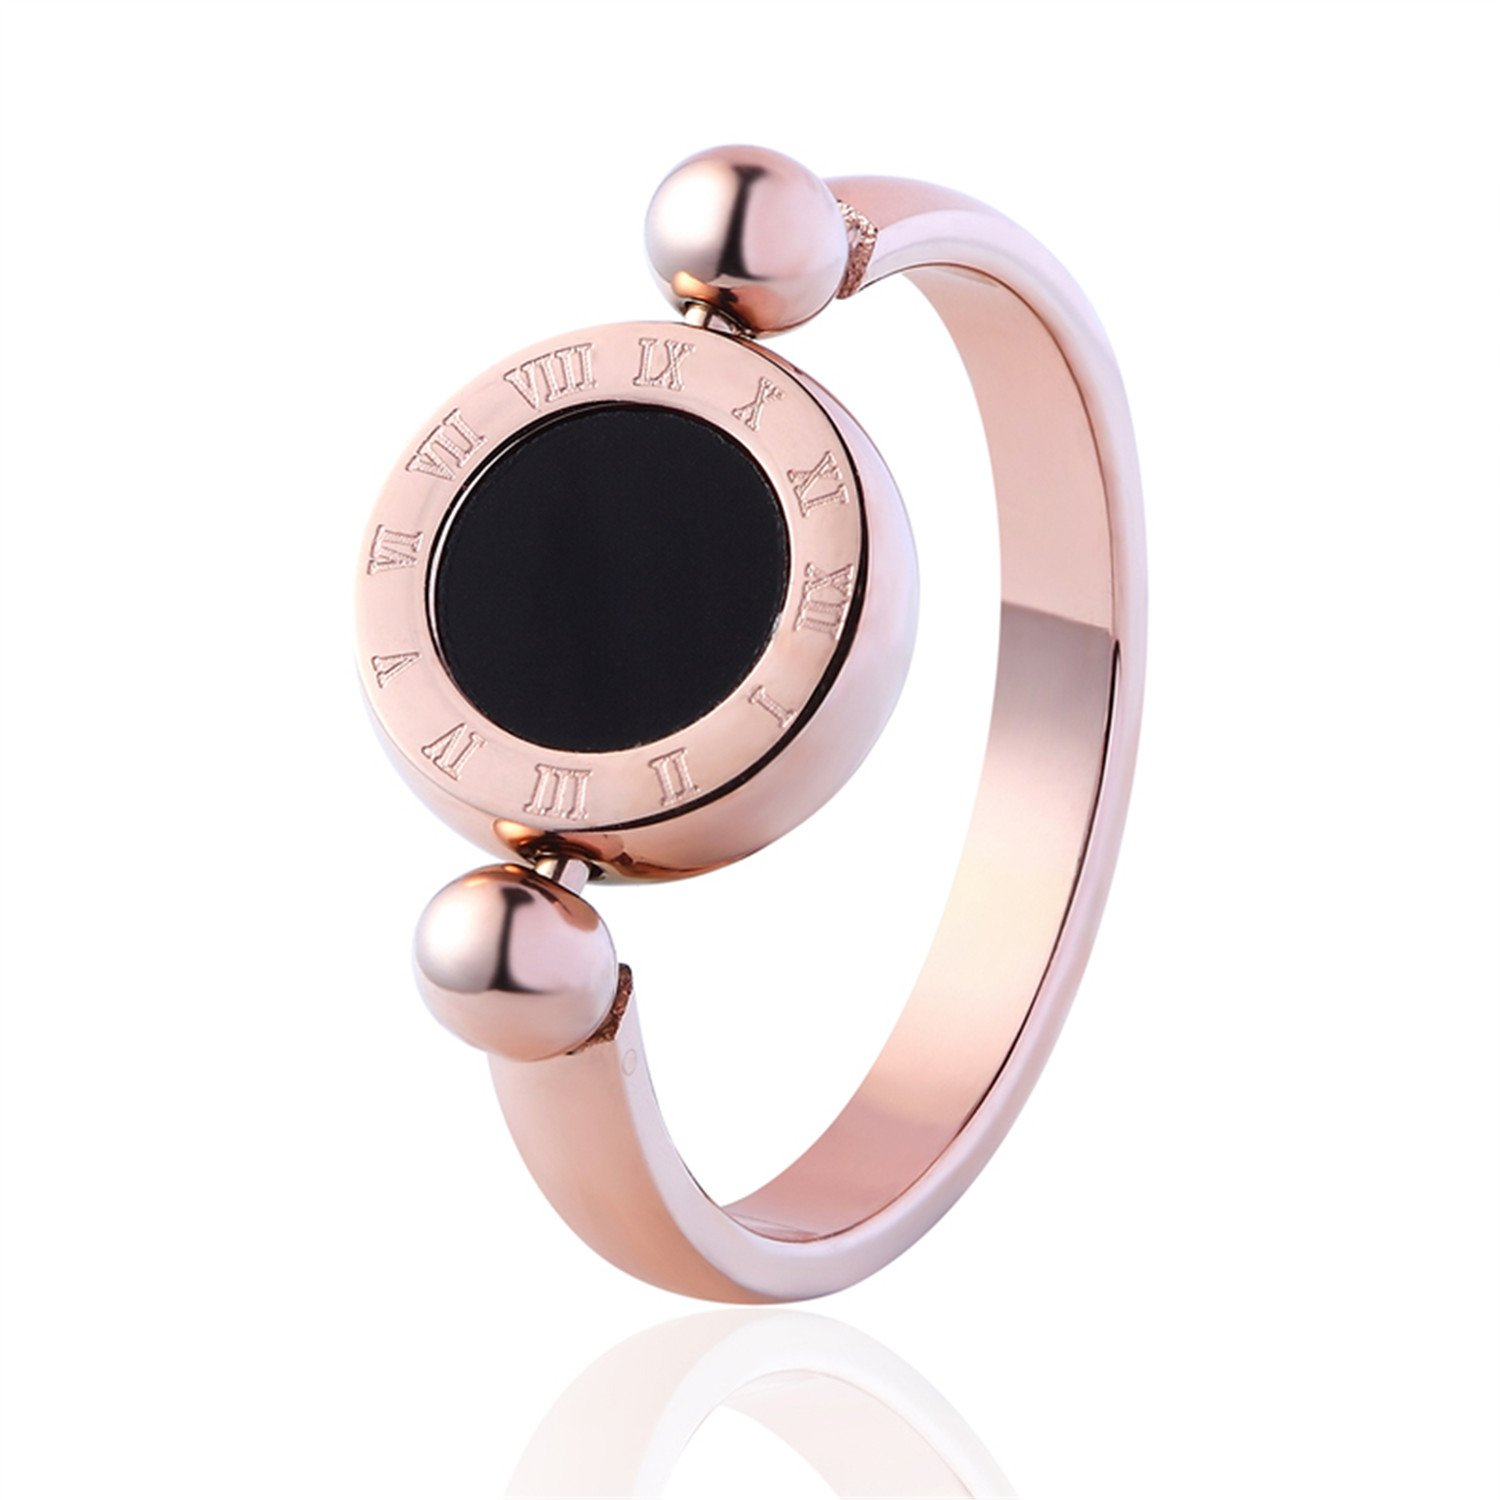 Trendy Wedding Bands Rings Can Be Rotated Roman Letters Two-Sided Shell And Enamel Ring Top Quality Lovers Luxury Brands Rings Rose gold 9